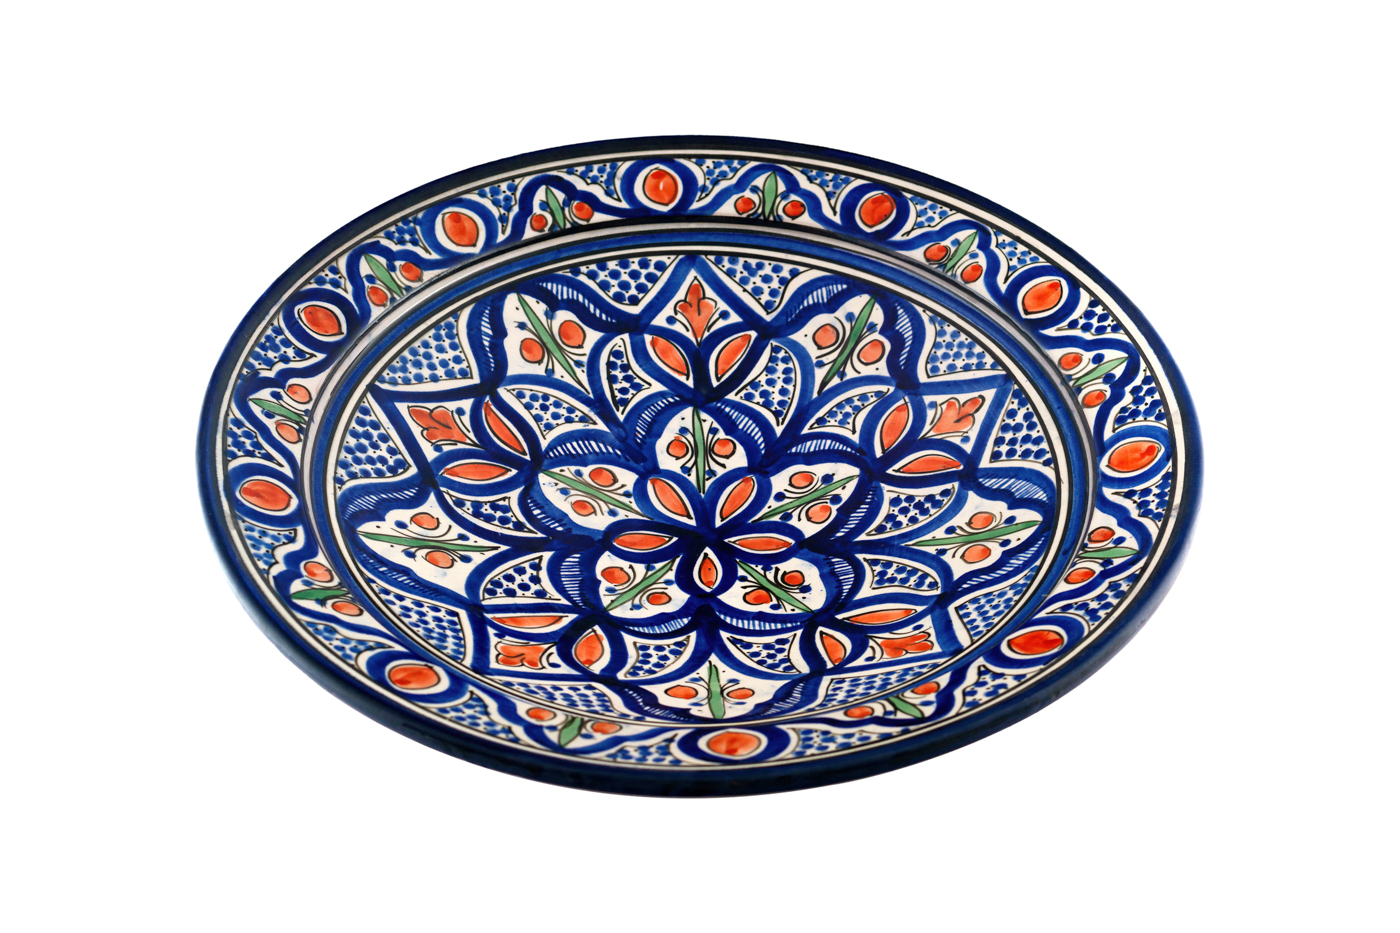 Moroccan ceramic plate painted with floral designs, Blue/Orange